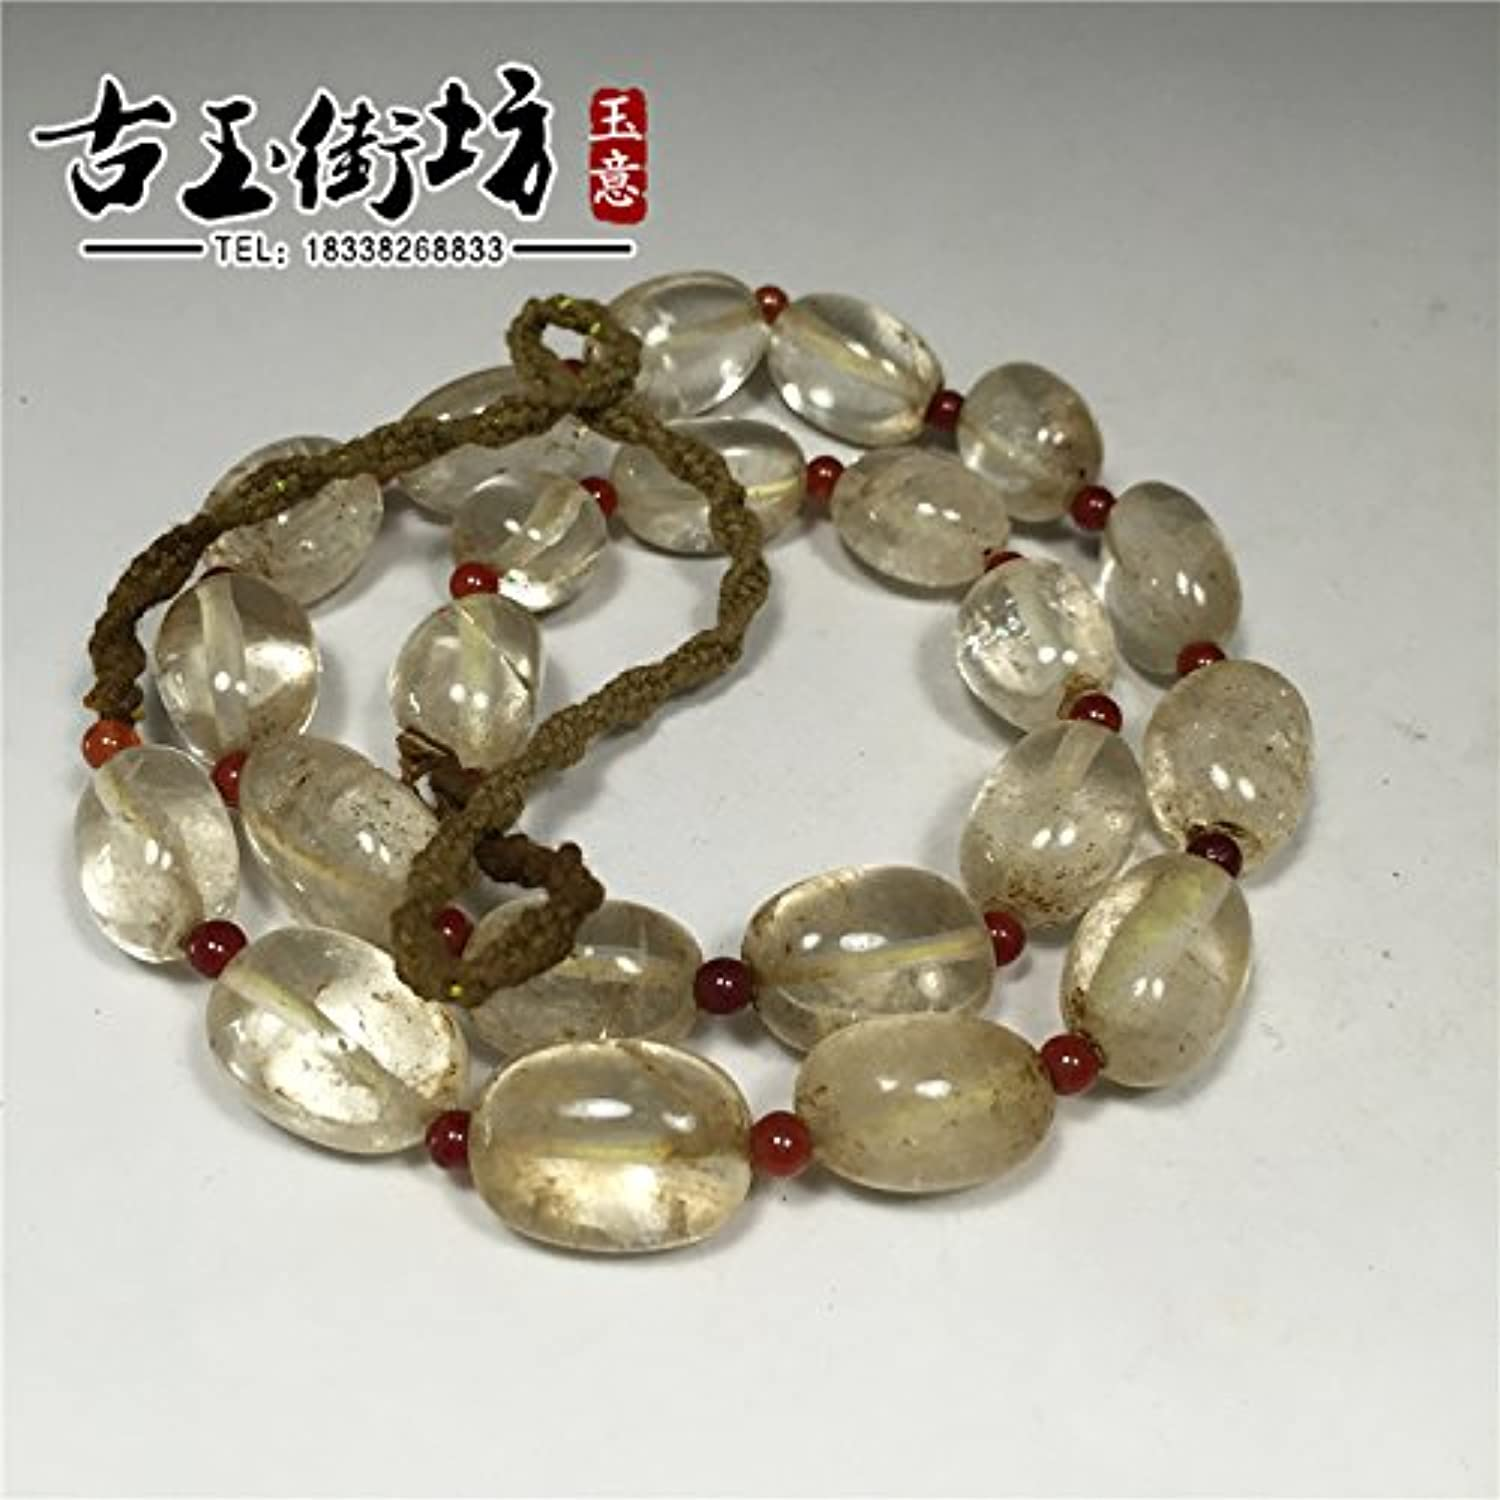 Beads Crystal Bracelets Bead White Old Natural Necklace